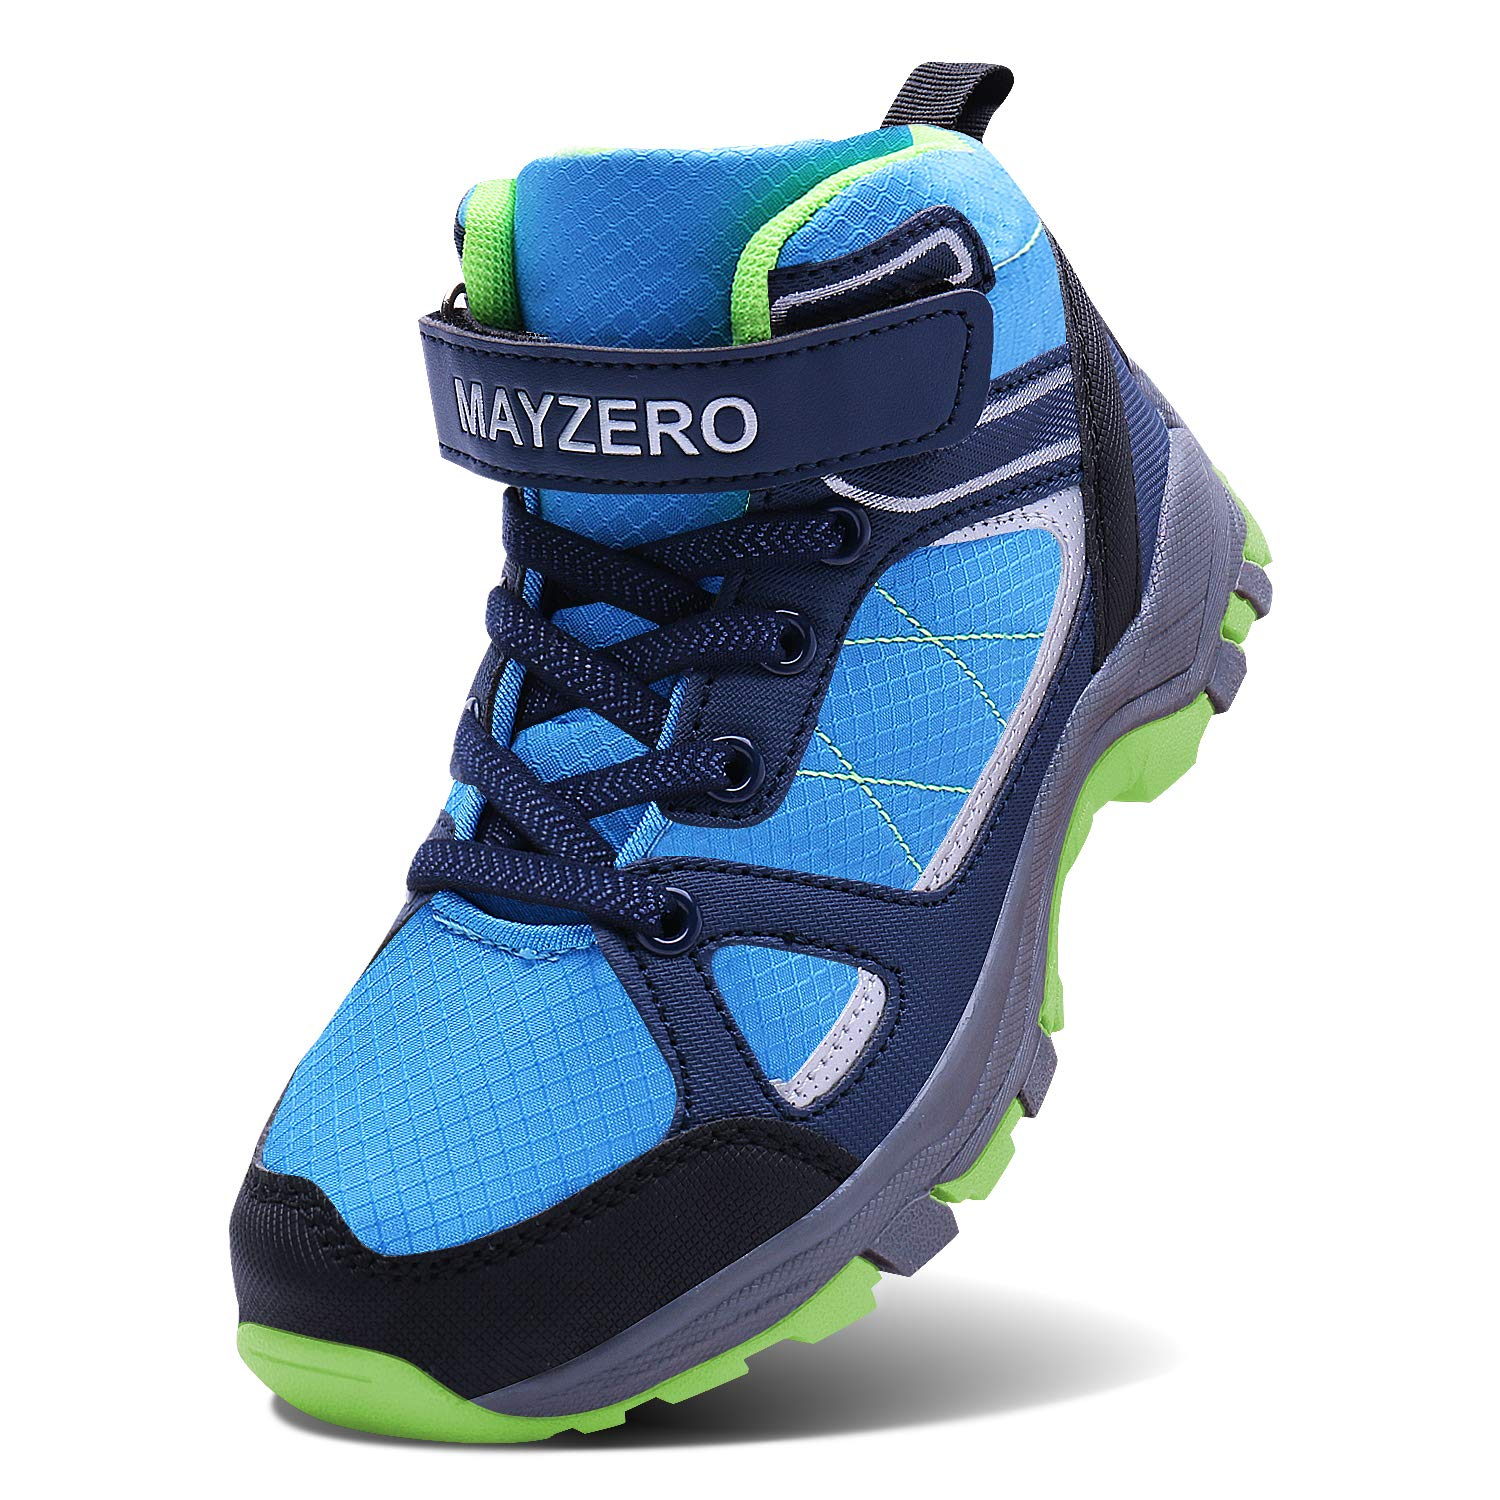 Caitin Kids Hiking Boots Lightweight Tennis Running Shoes Outdoor Athletic Sneakers for Boys and Girls